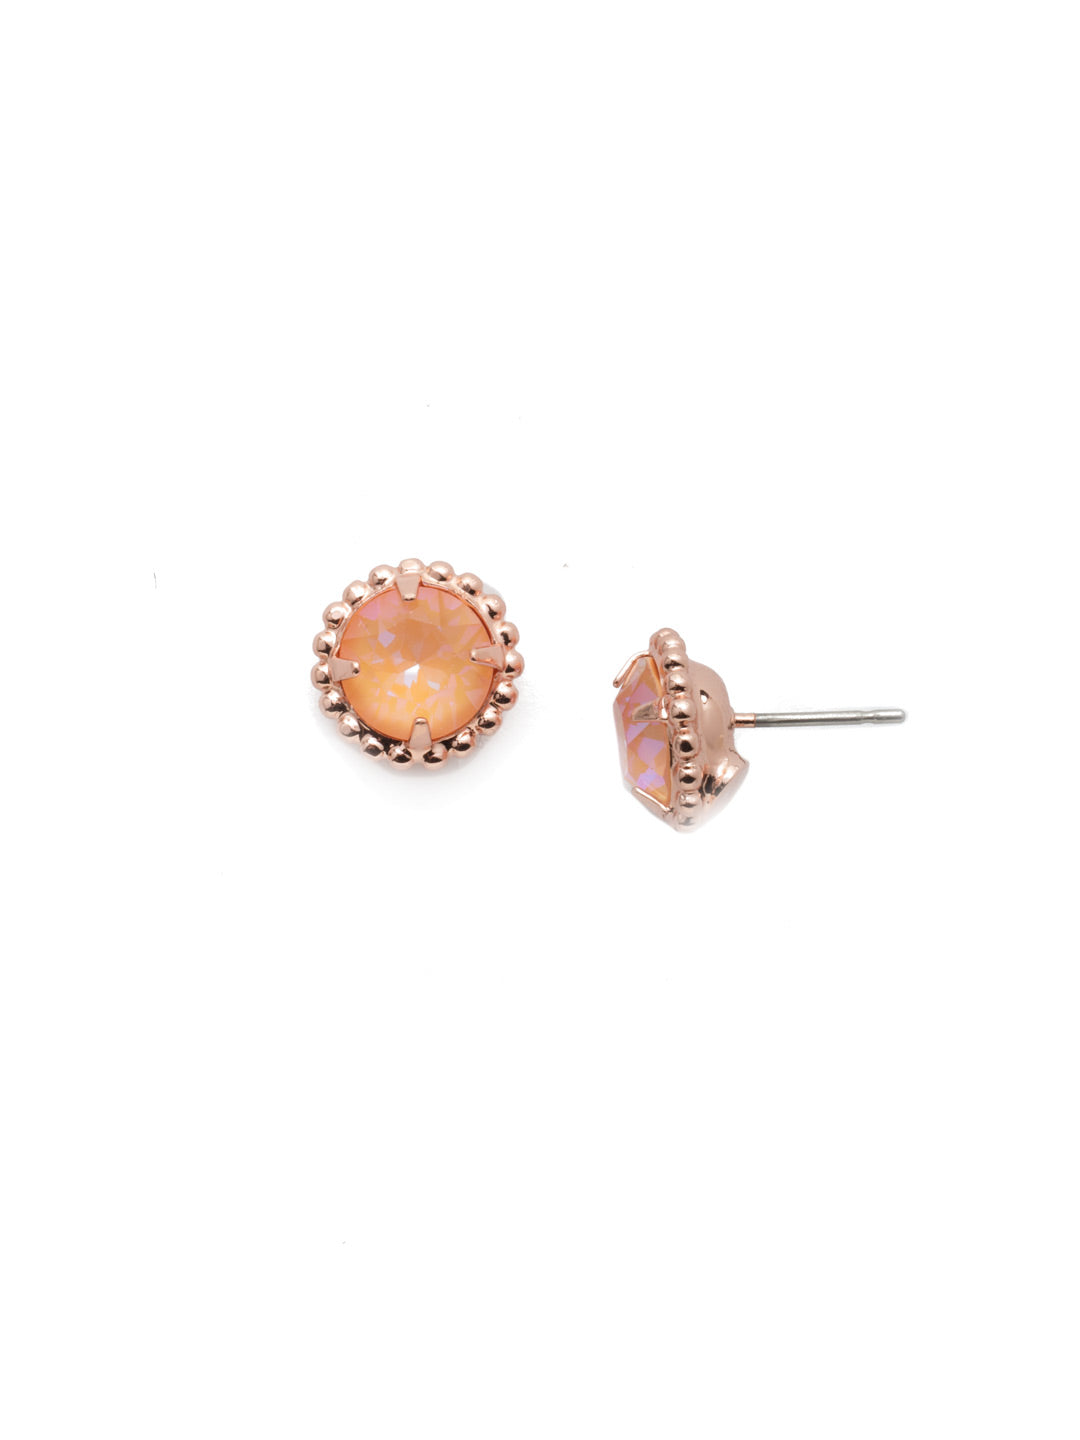 Simplicity Stud Earrings - EBY38RGLVP